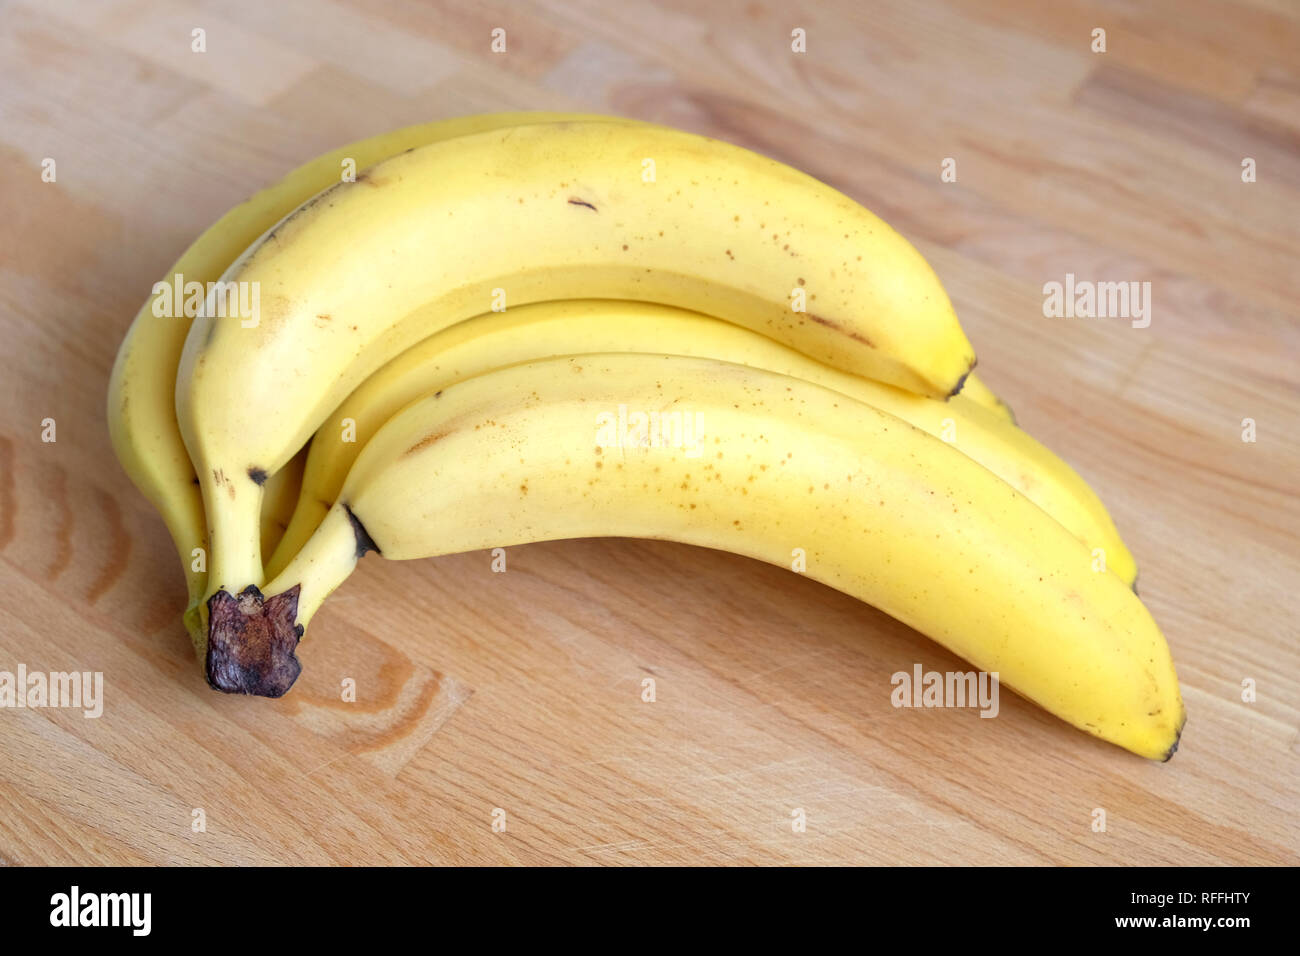 Ripe bananas lies on brown wooden table horizontal view real photo closeup - Stock Image